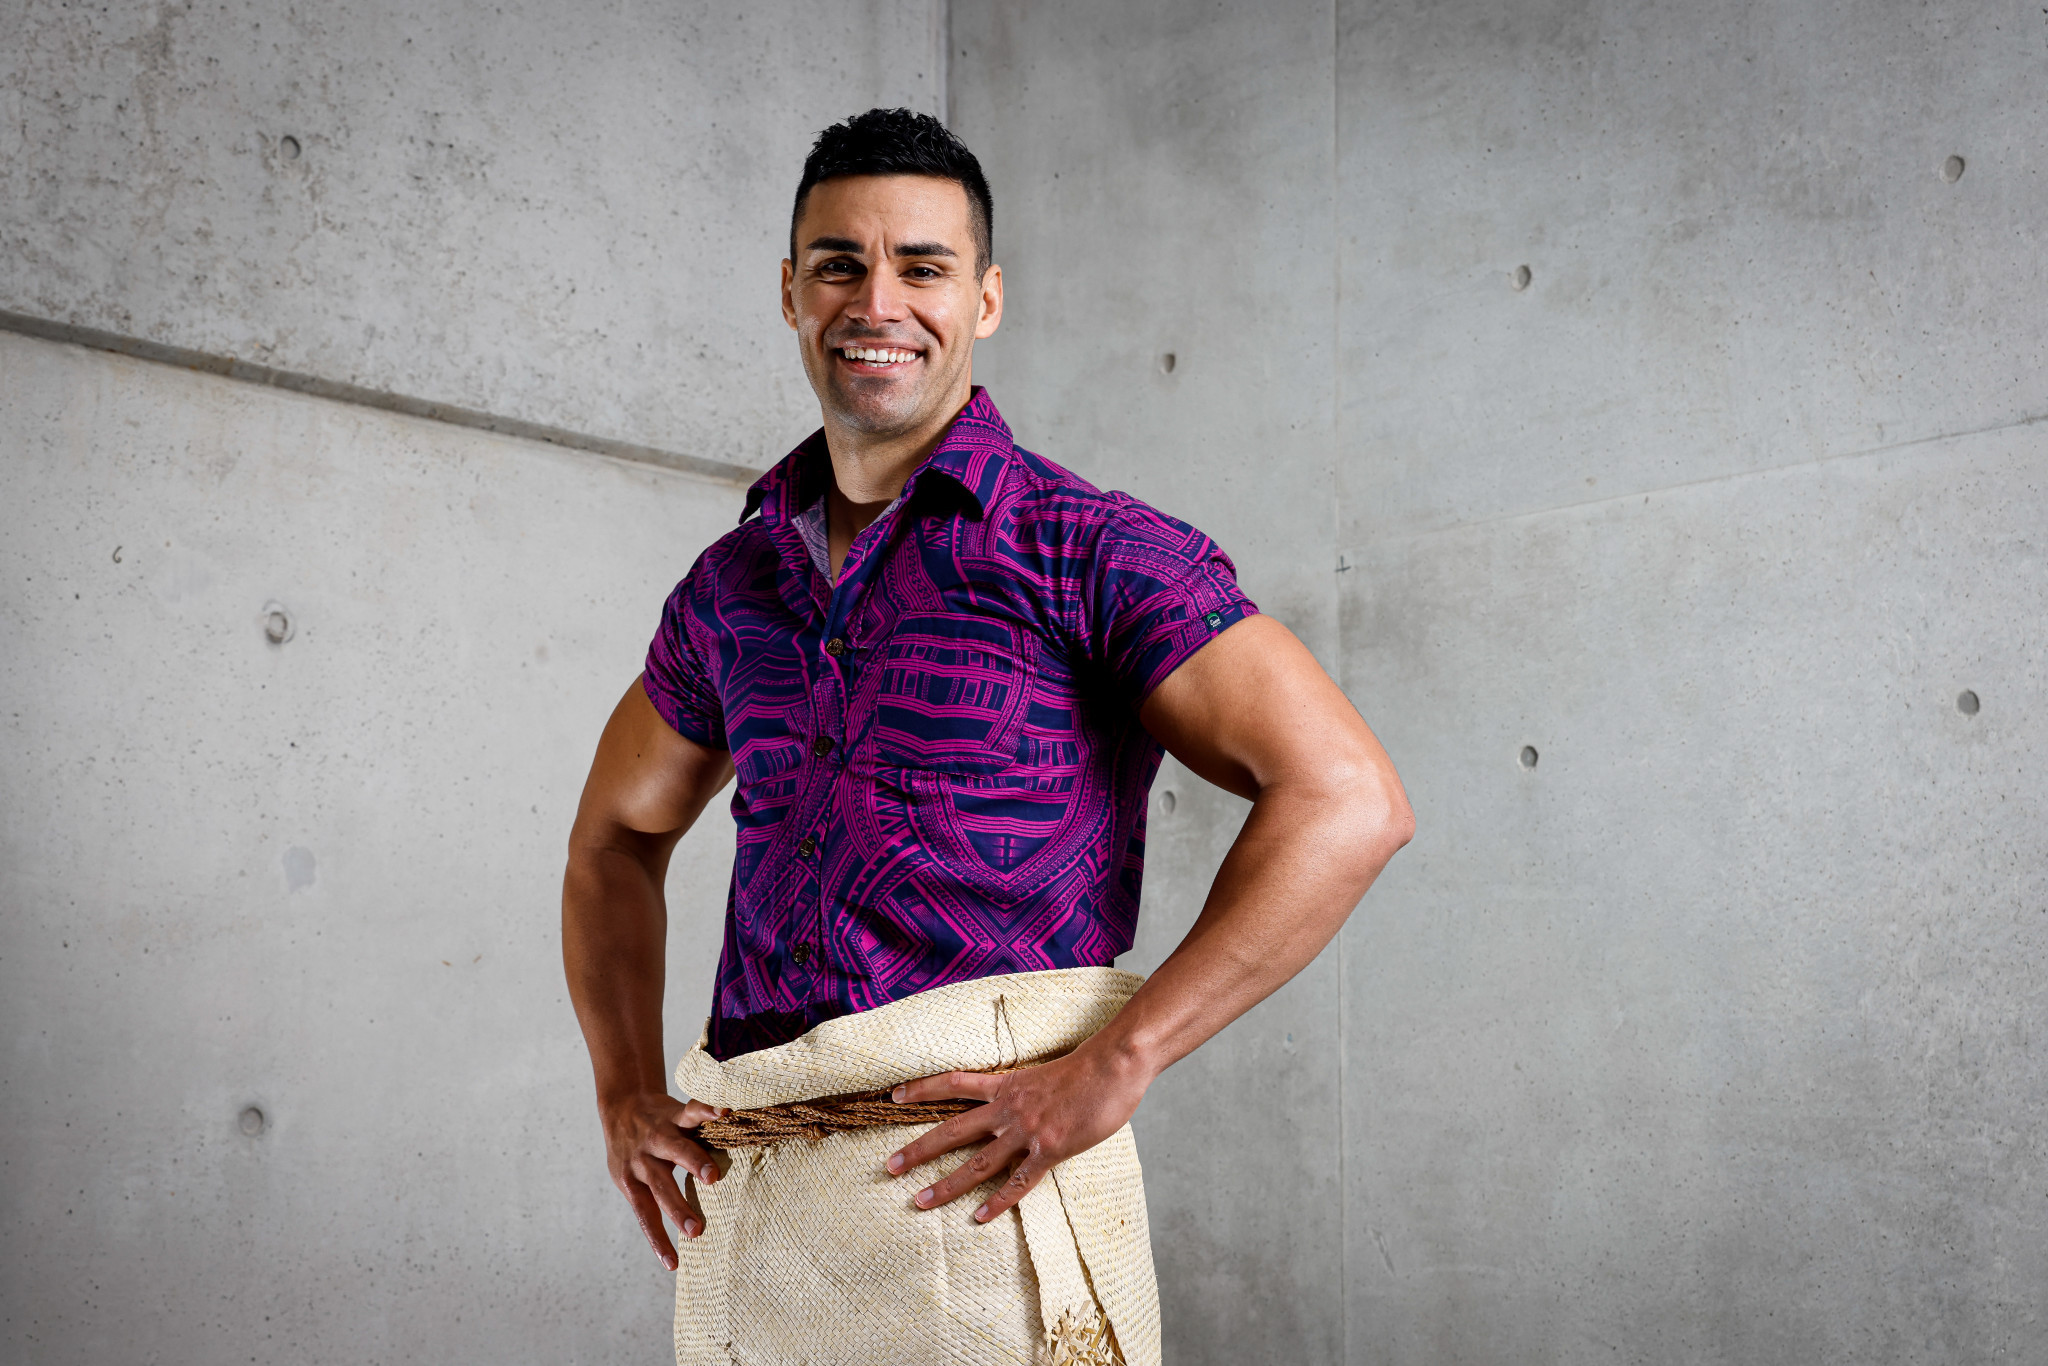 Taufatofua claims fame was not his aim as Tongan prepares for third successive Olympics